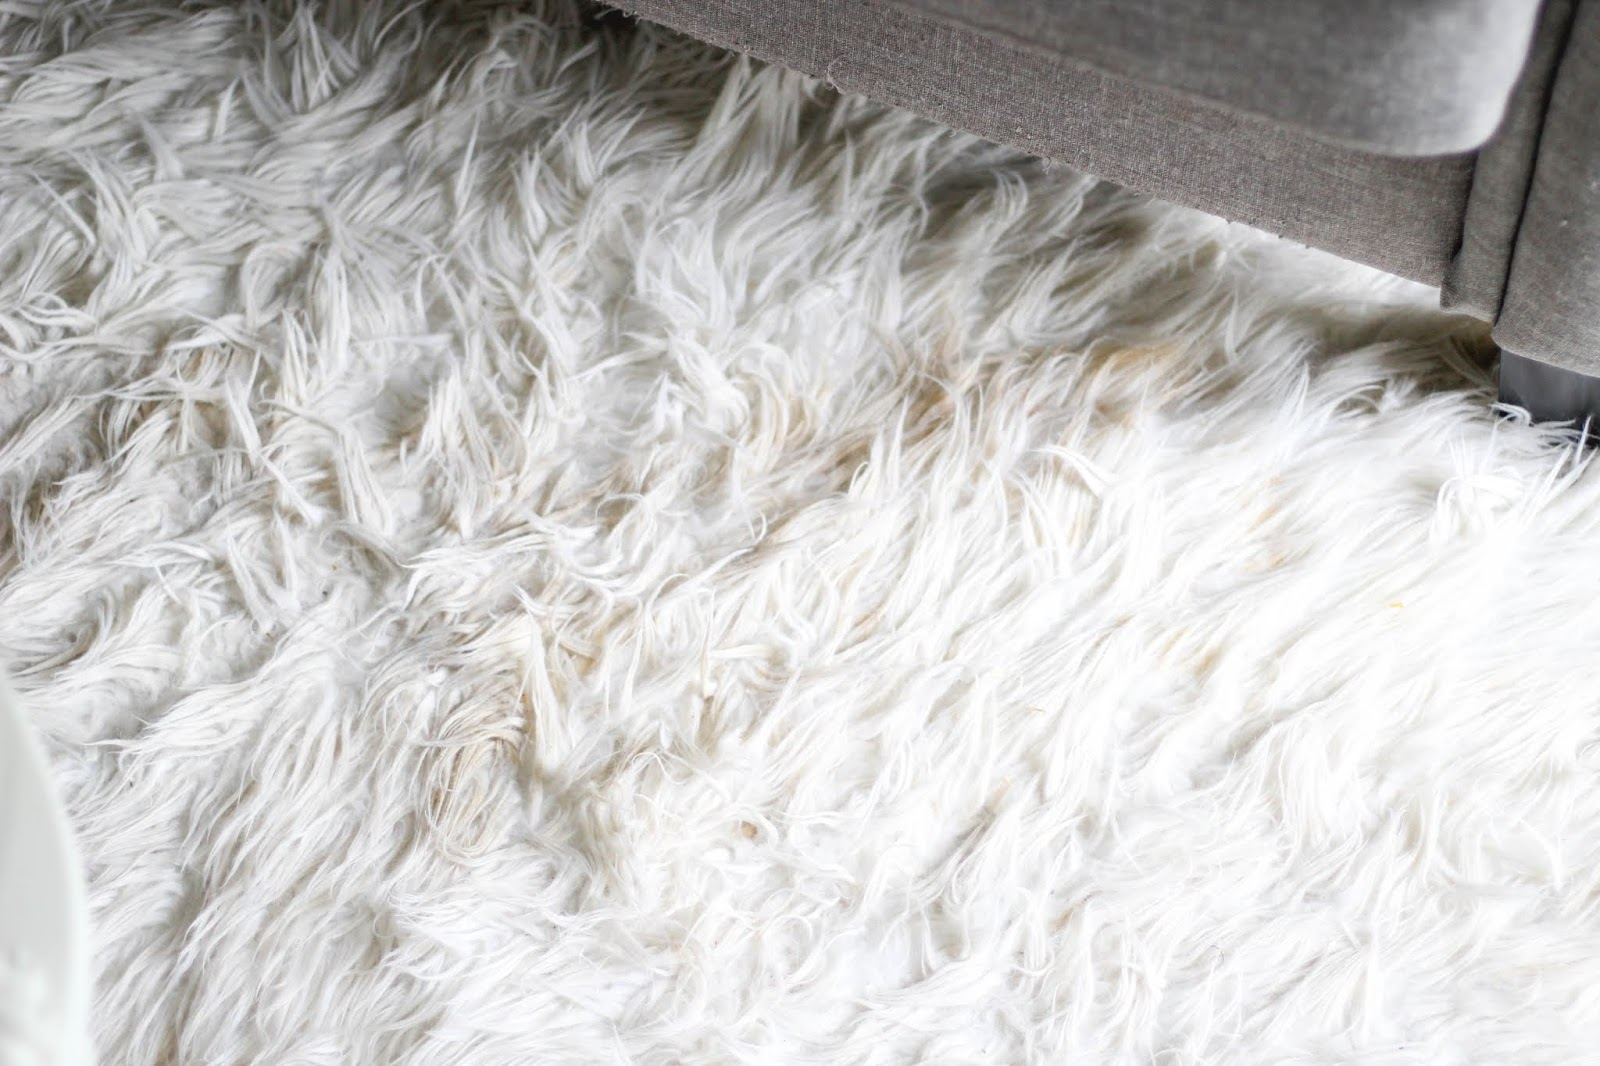 Hasil gambar untuk The Sheepskin Rug Is Here To Stay